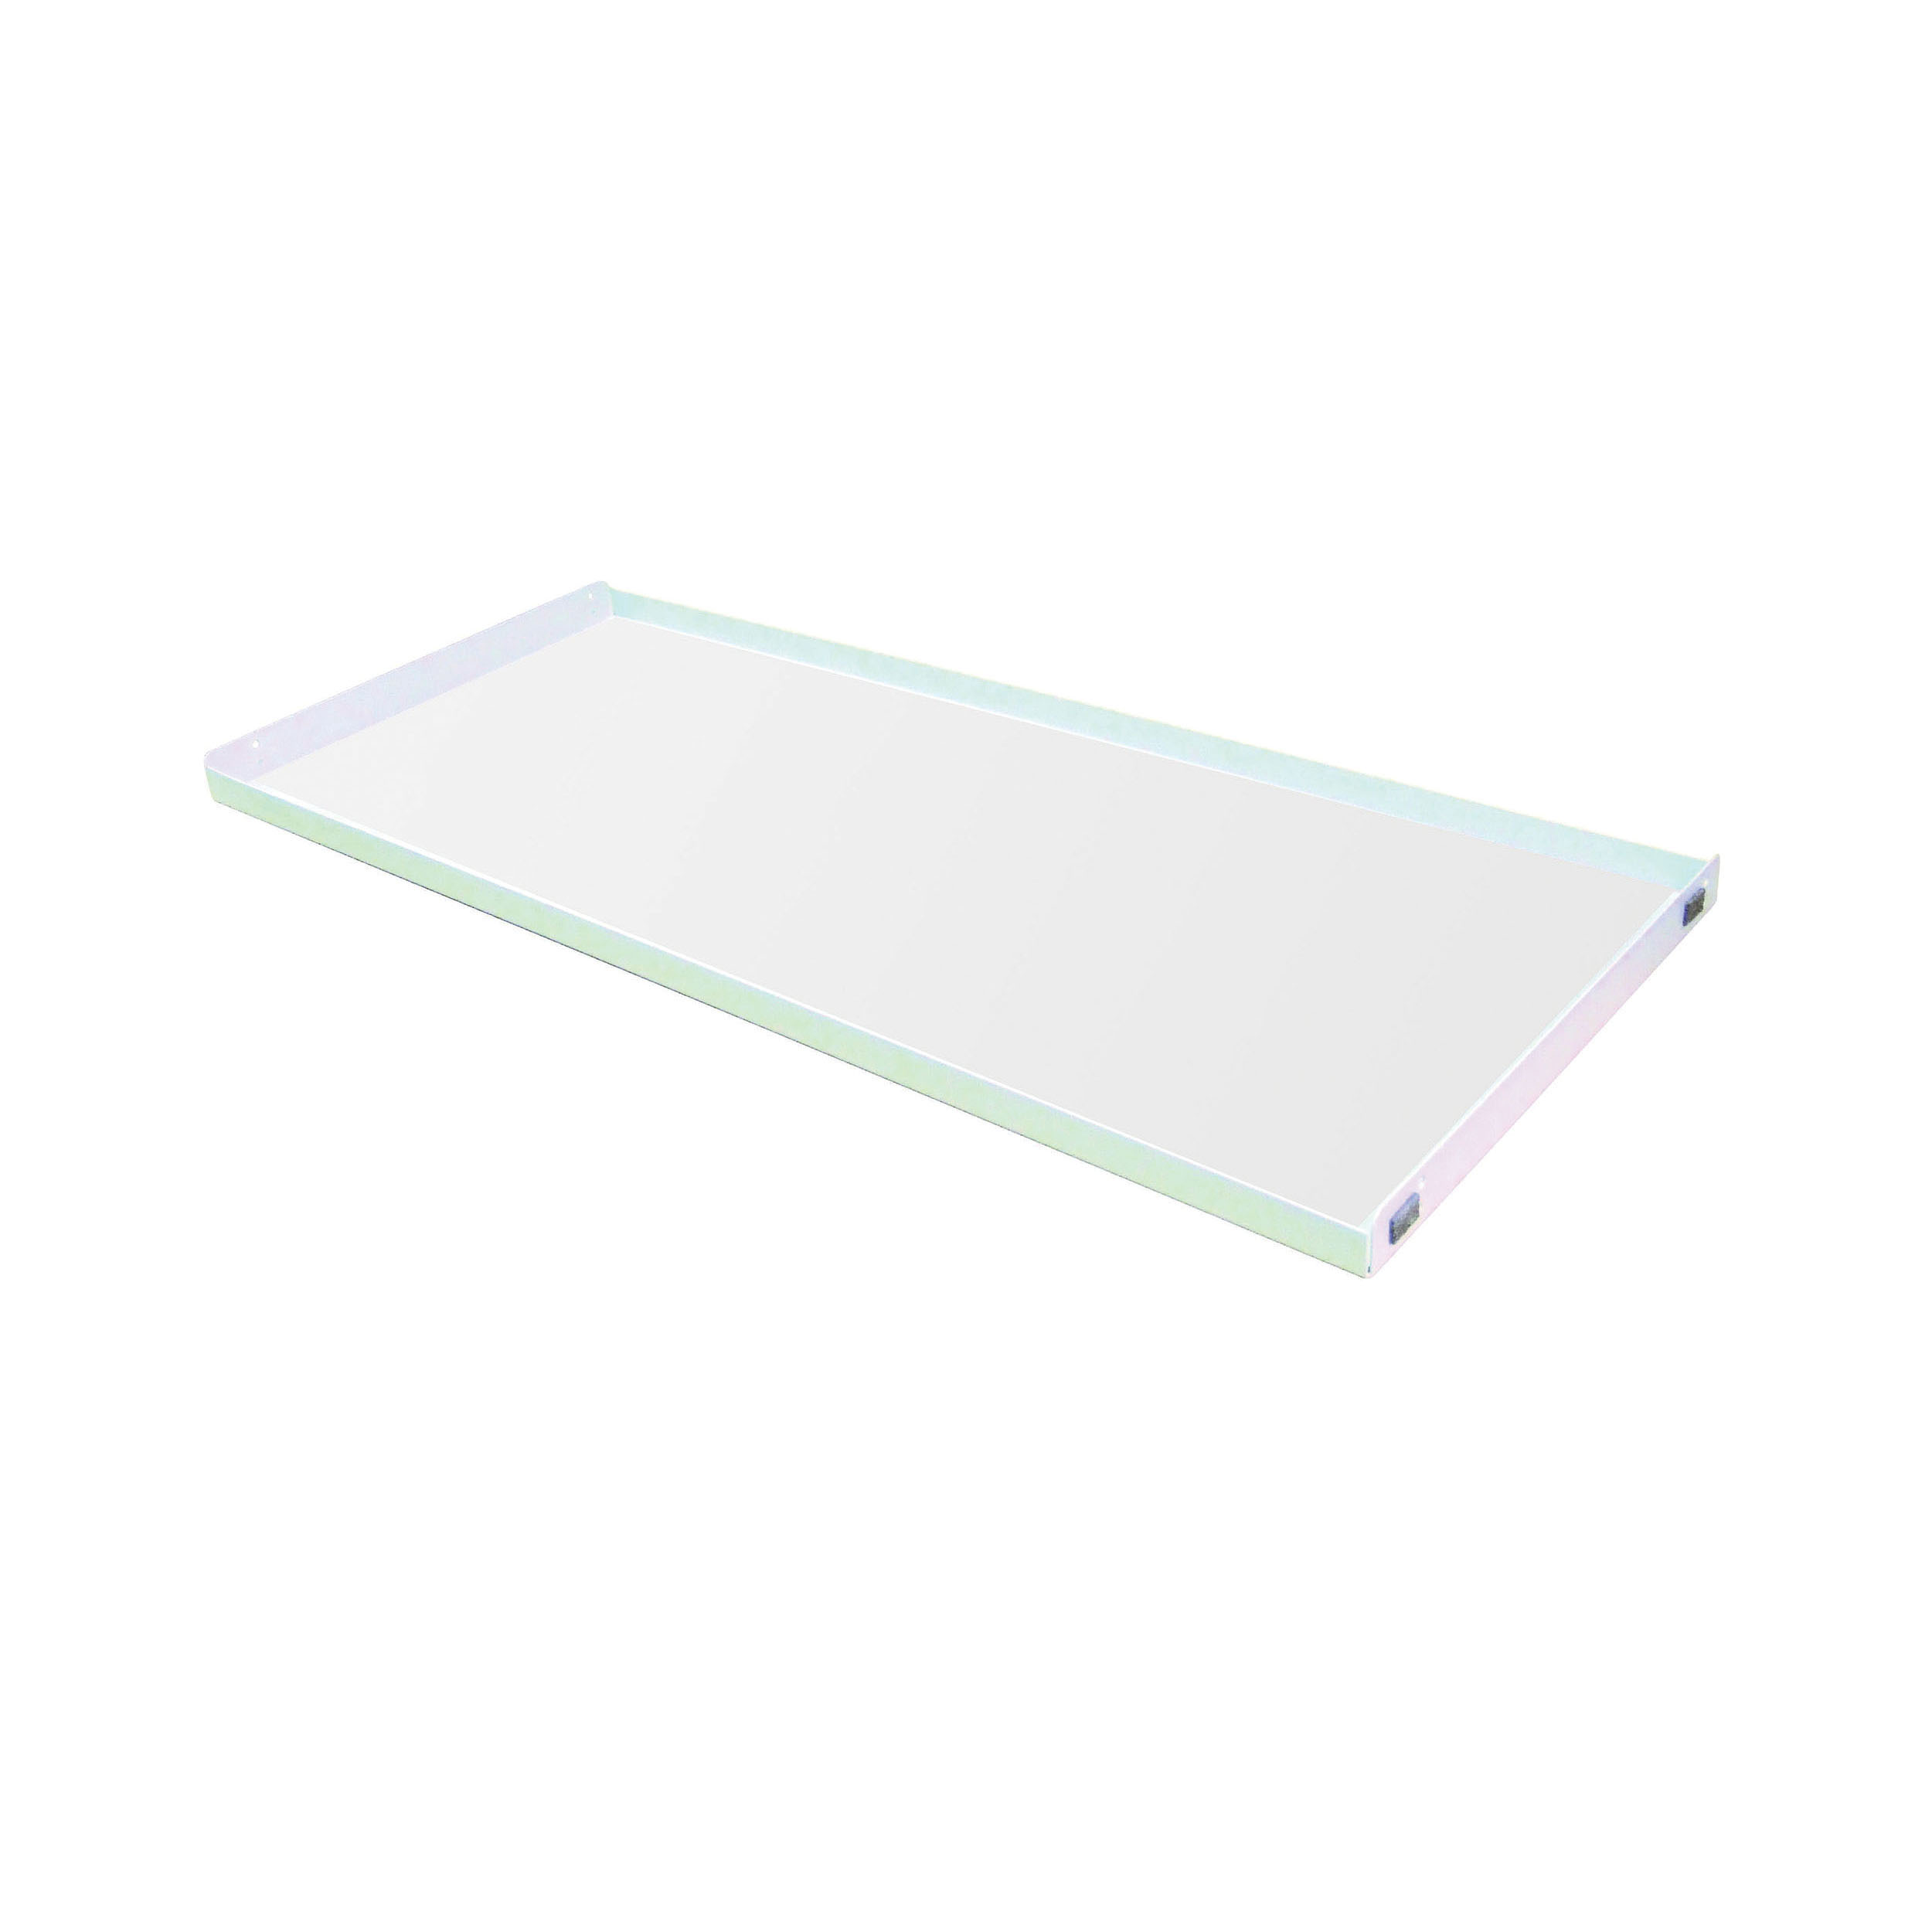 Justrite® 22631 Shelf, For Use With 45 gal 30 min/90 min Safety Cabinet, Light Gray